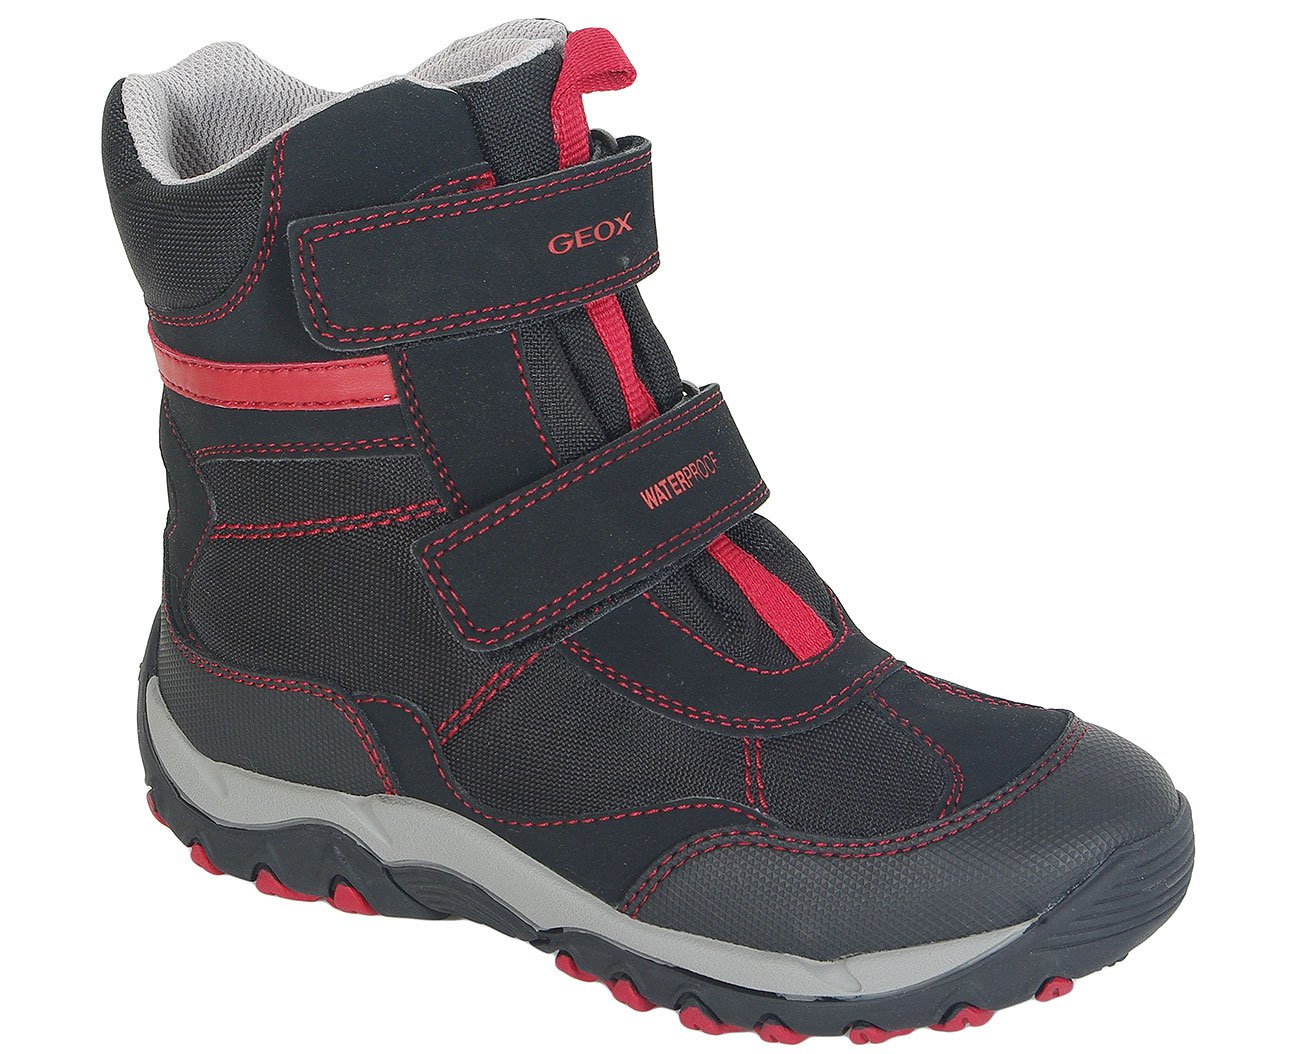 GEOX Alaska Waterproof A Tex+Dbk Black/Dk Red trzewiki